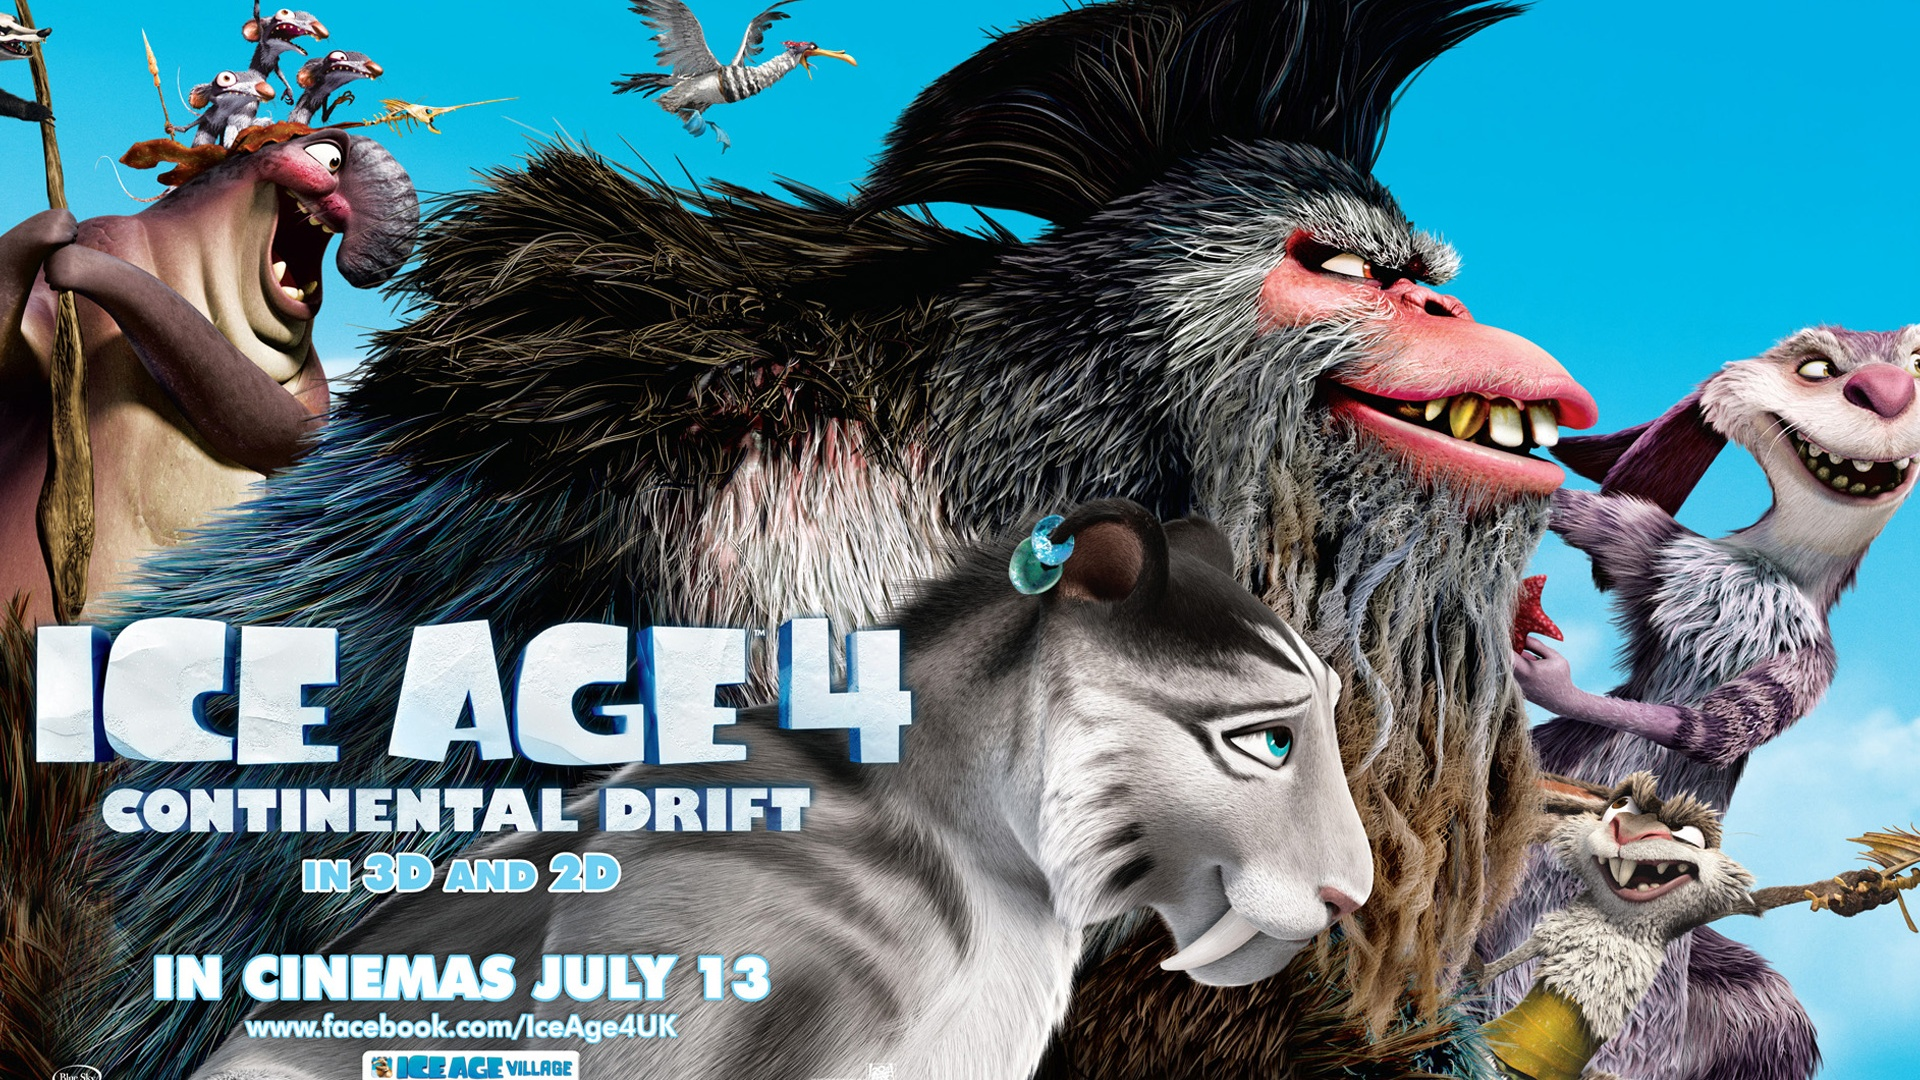 Ice Age 4 Continental Drift likewise The Harmony Of Nature Sun East as well 古剑奇谭》游戏壁纸 第二辑】高清  quot 《古剑奇谭 furthermore 甜美可爱卡通Hello Kity系列高清壁纸03】高清  quot 甜美 as well 蒲公英图片桌面壁纸】高清  quot 蒲公英图片桌面壁纸. on 1206 html